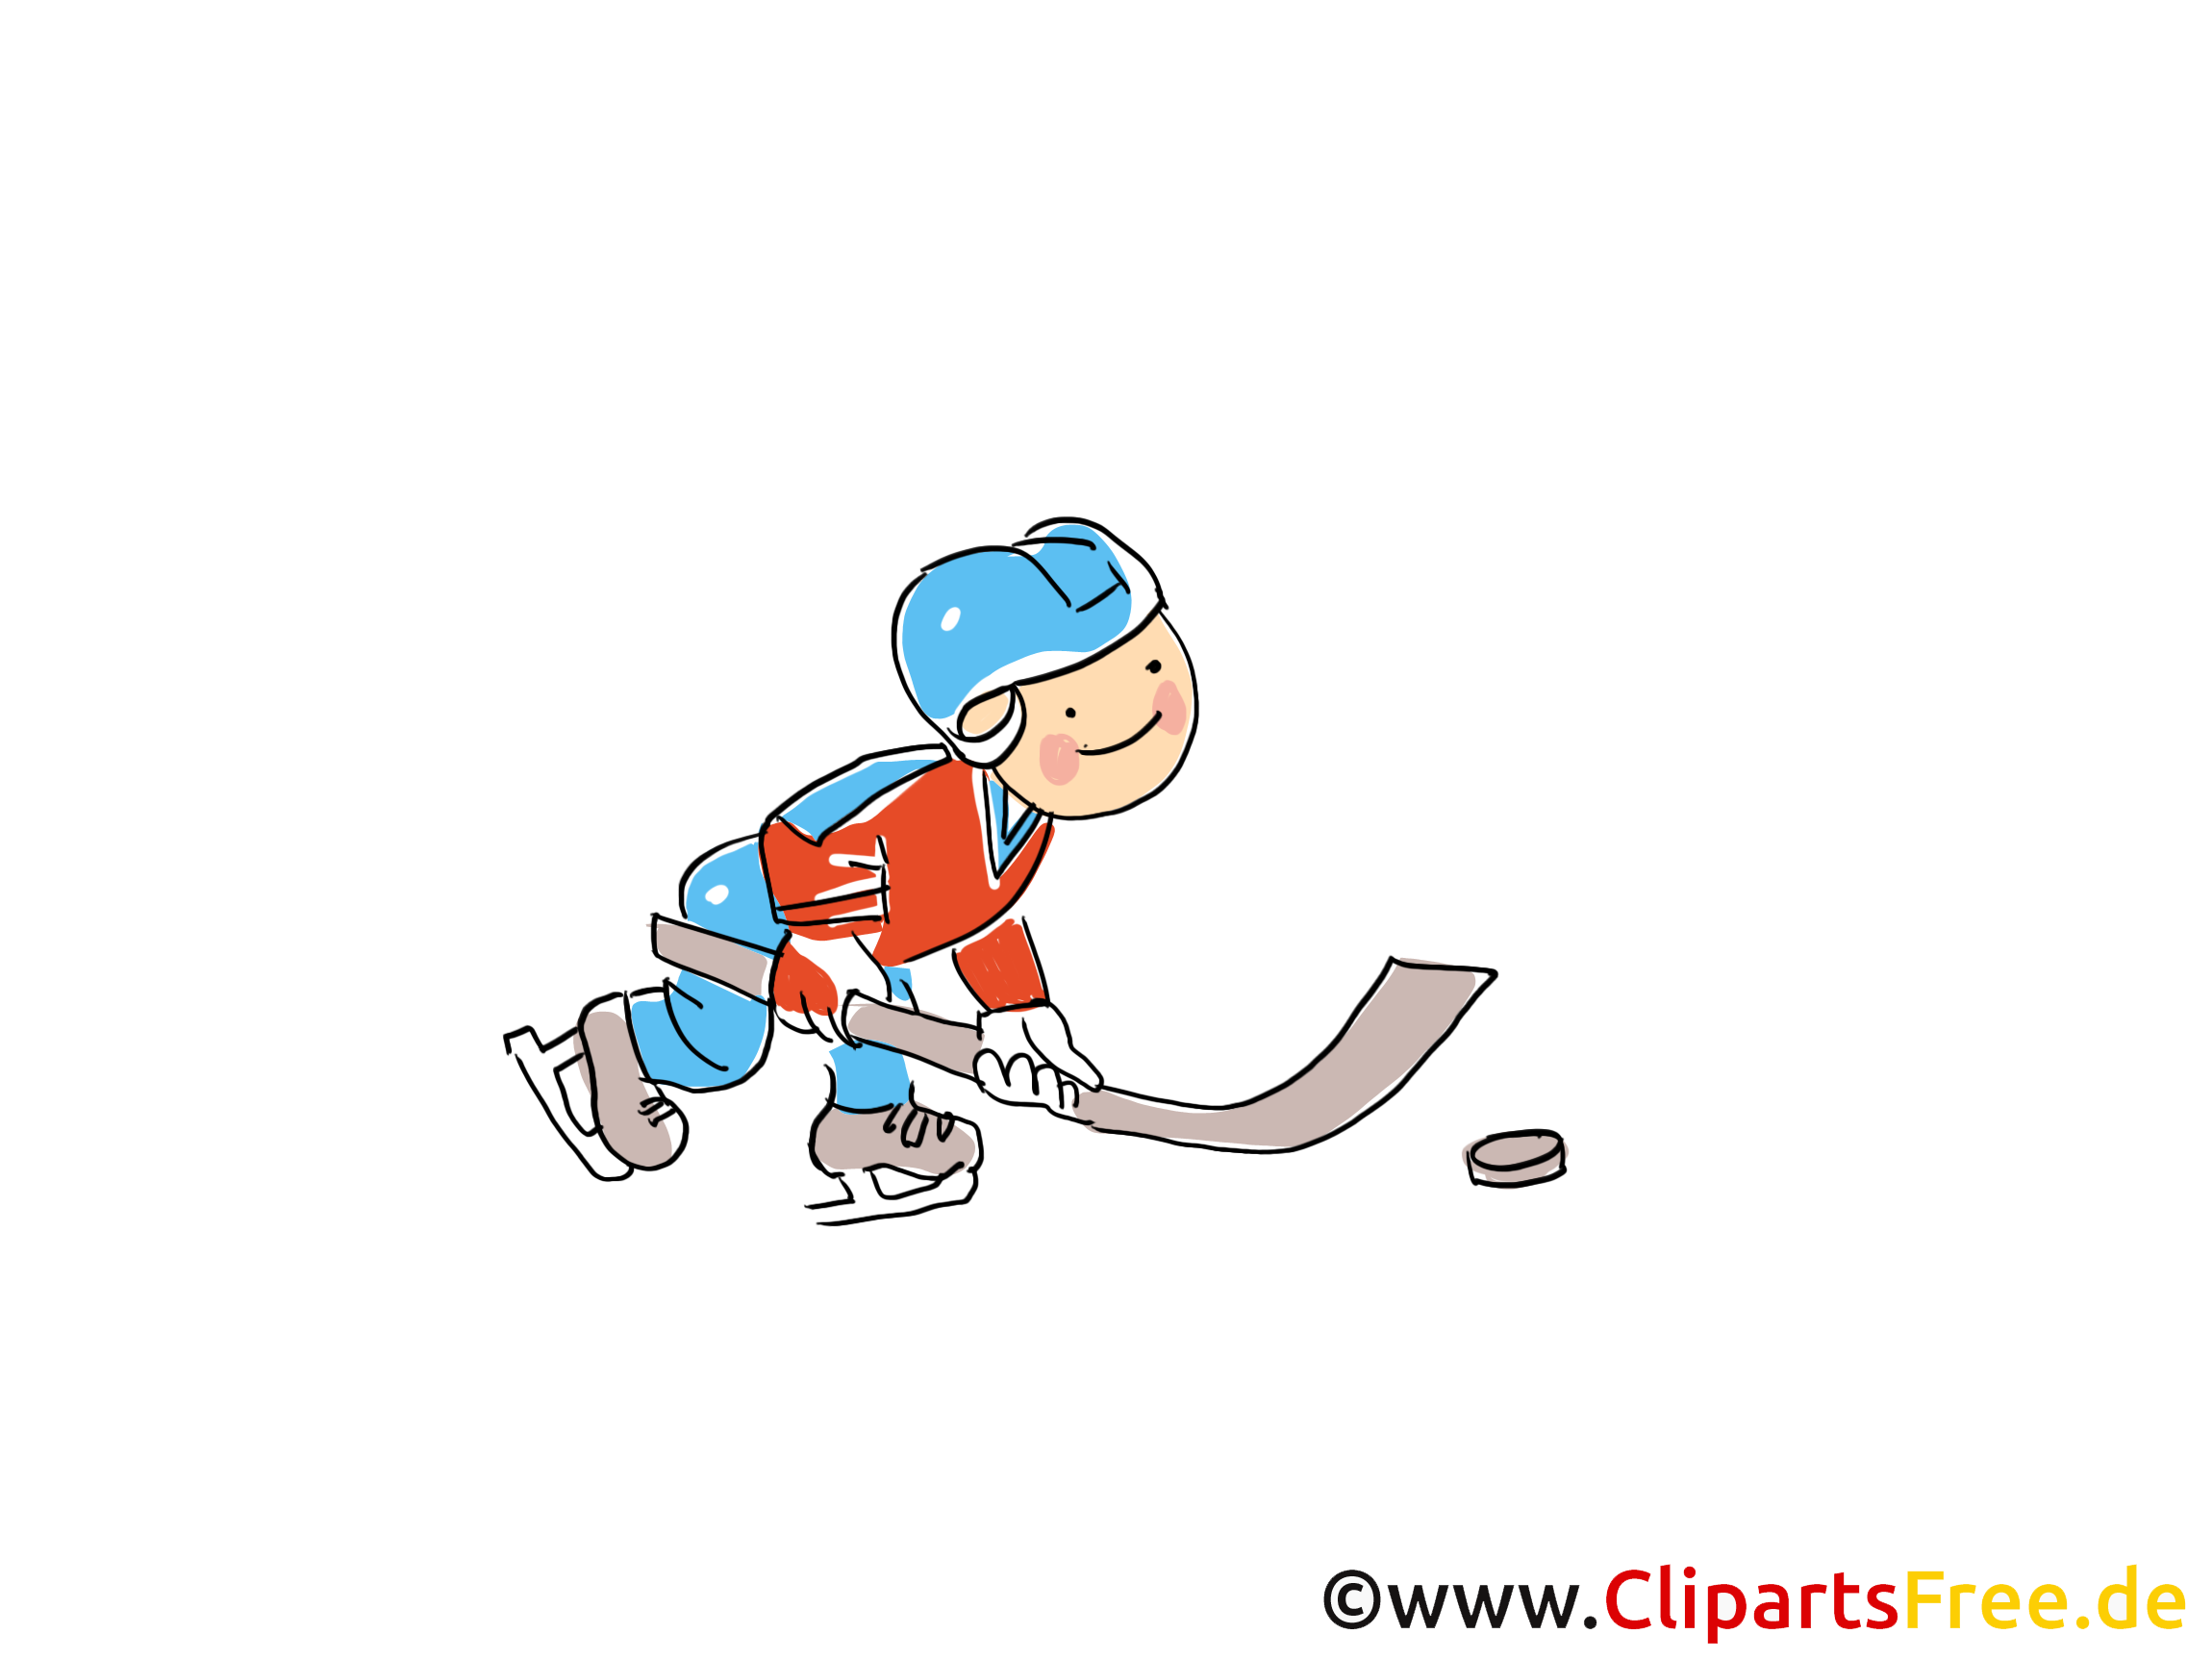 Lustige Eishockey Bilder Cliparts Comic Cartoons Gratis